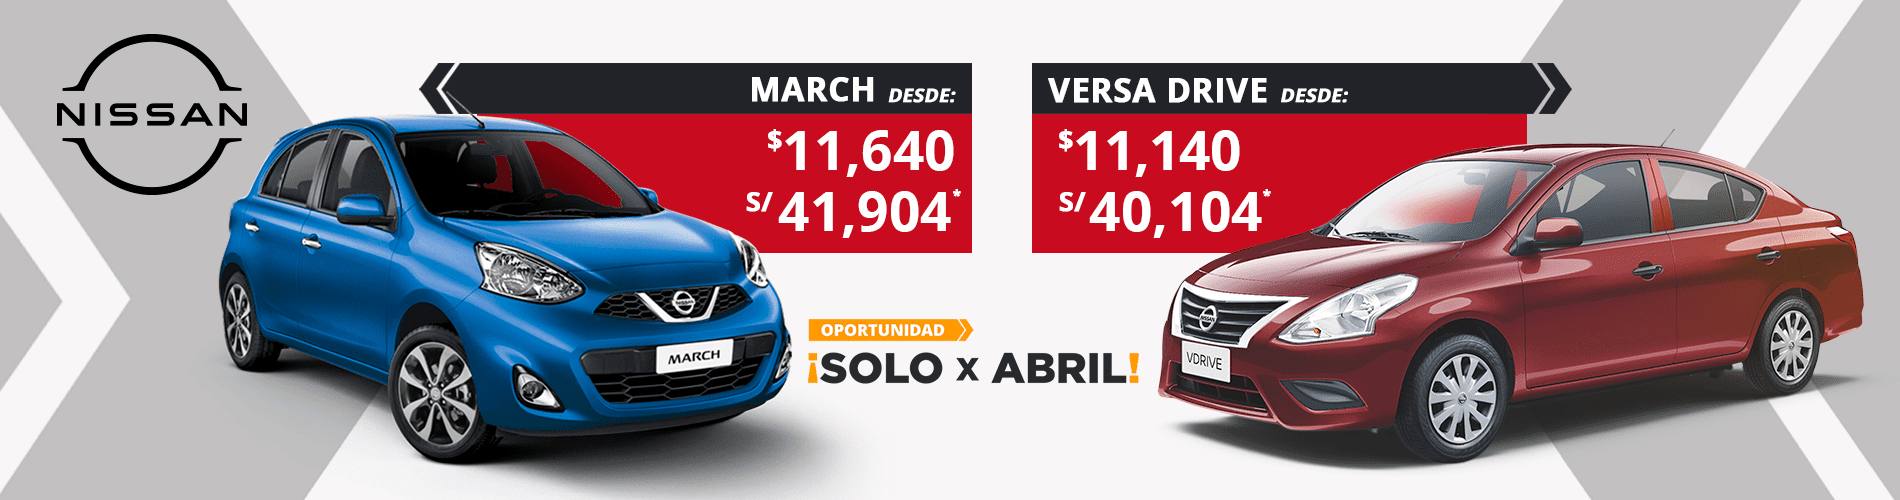 Solo X Abril March y v-drive